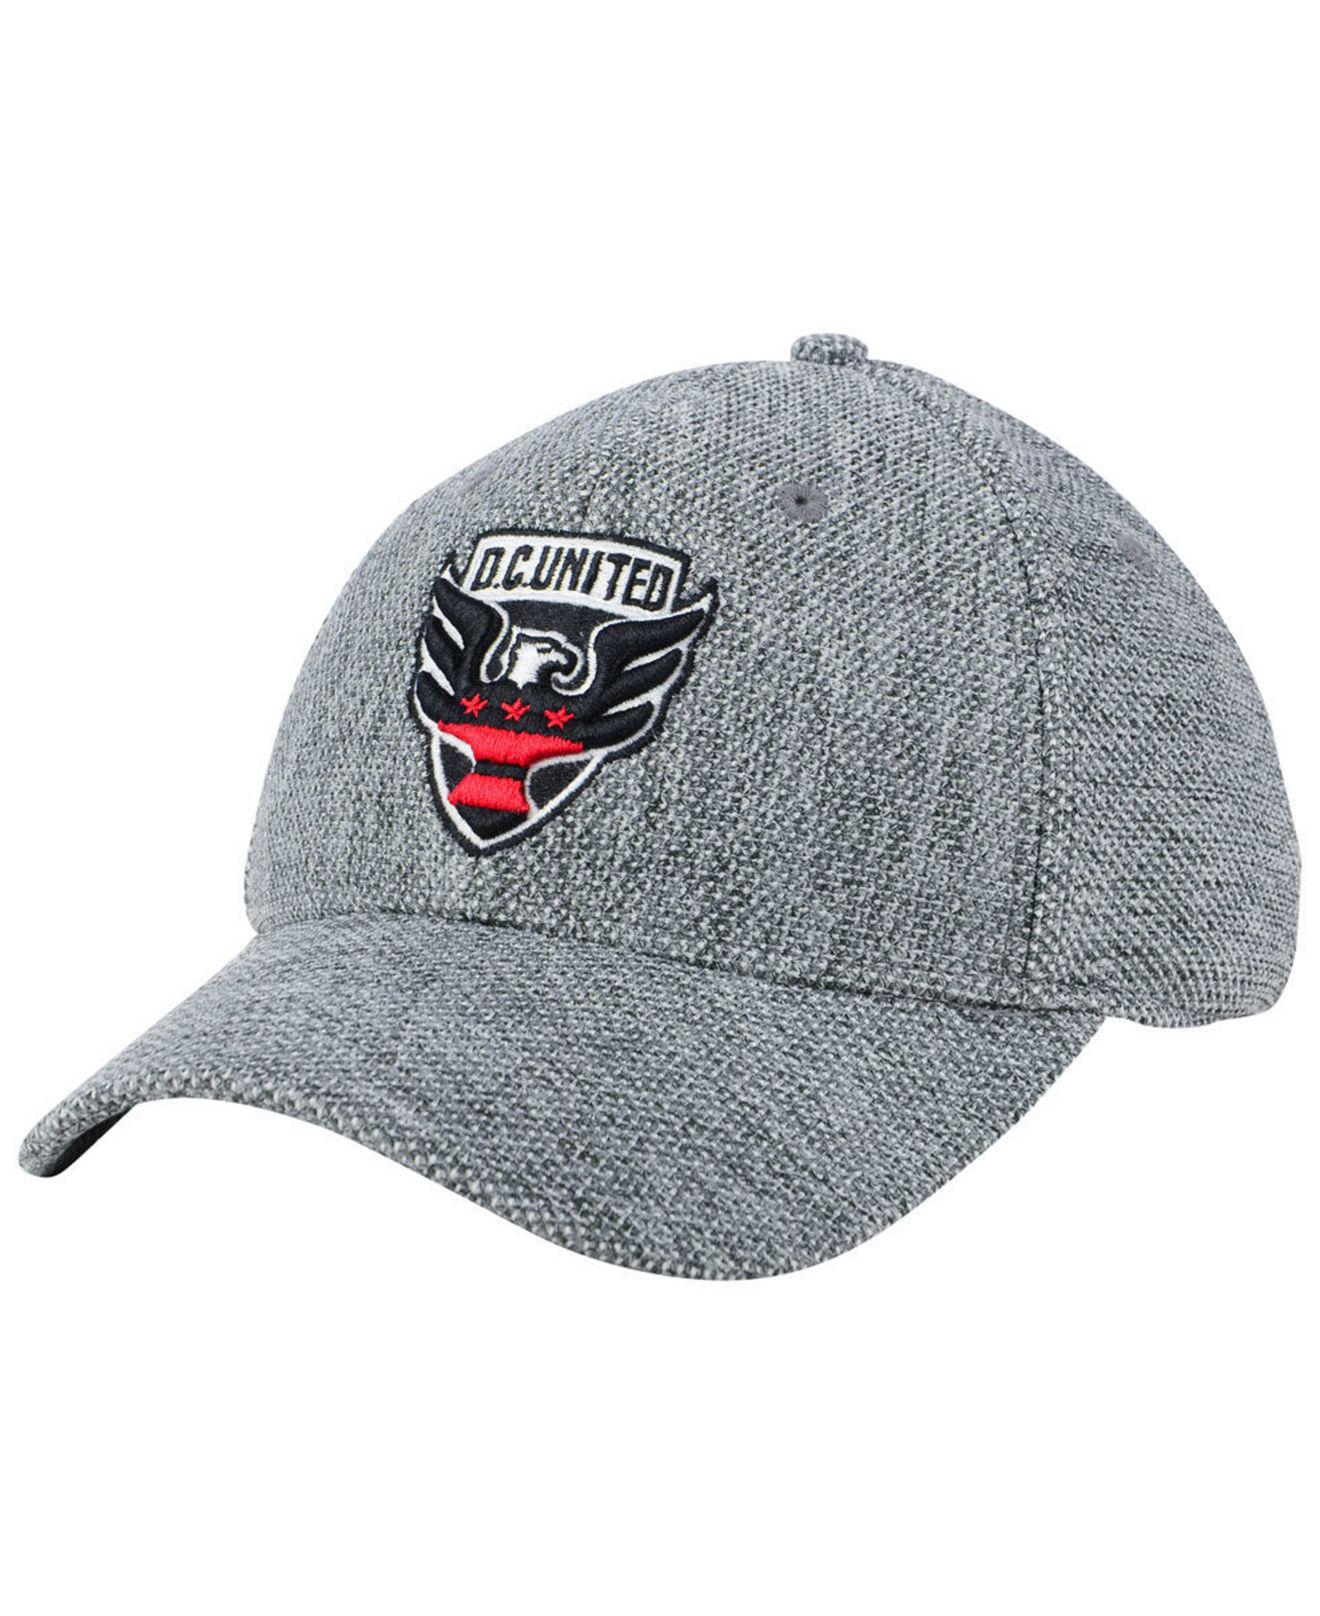 Lyst - Adidas Dc United Penalty Kick Flex Cap in Gray for Men 89243906b421